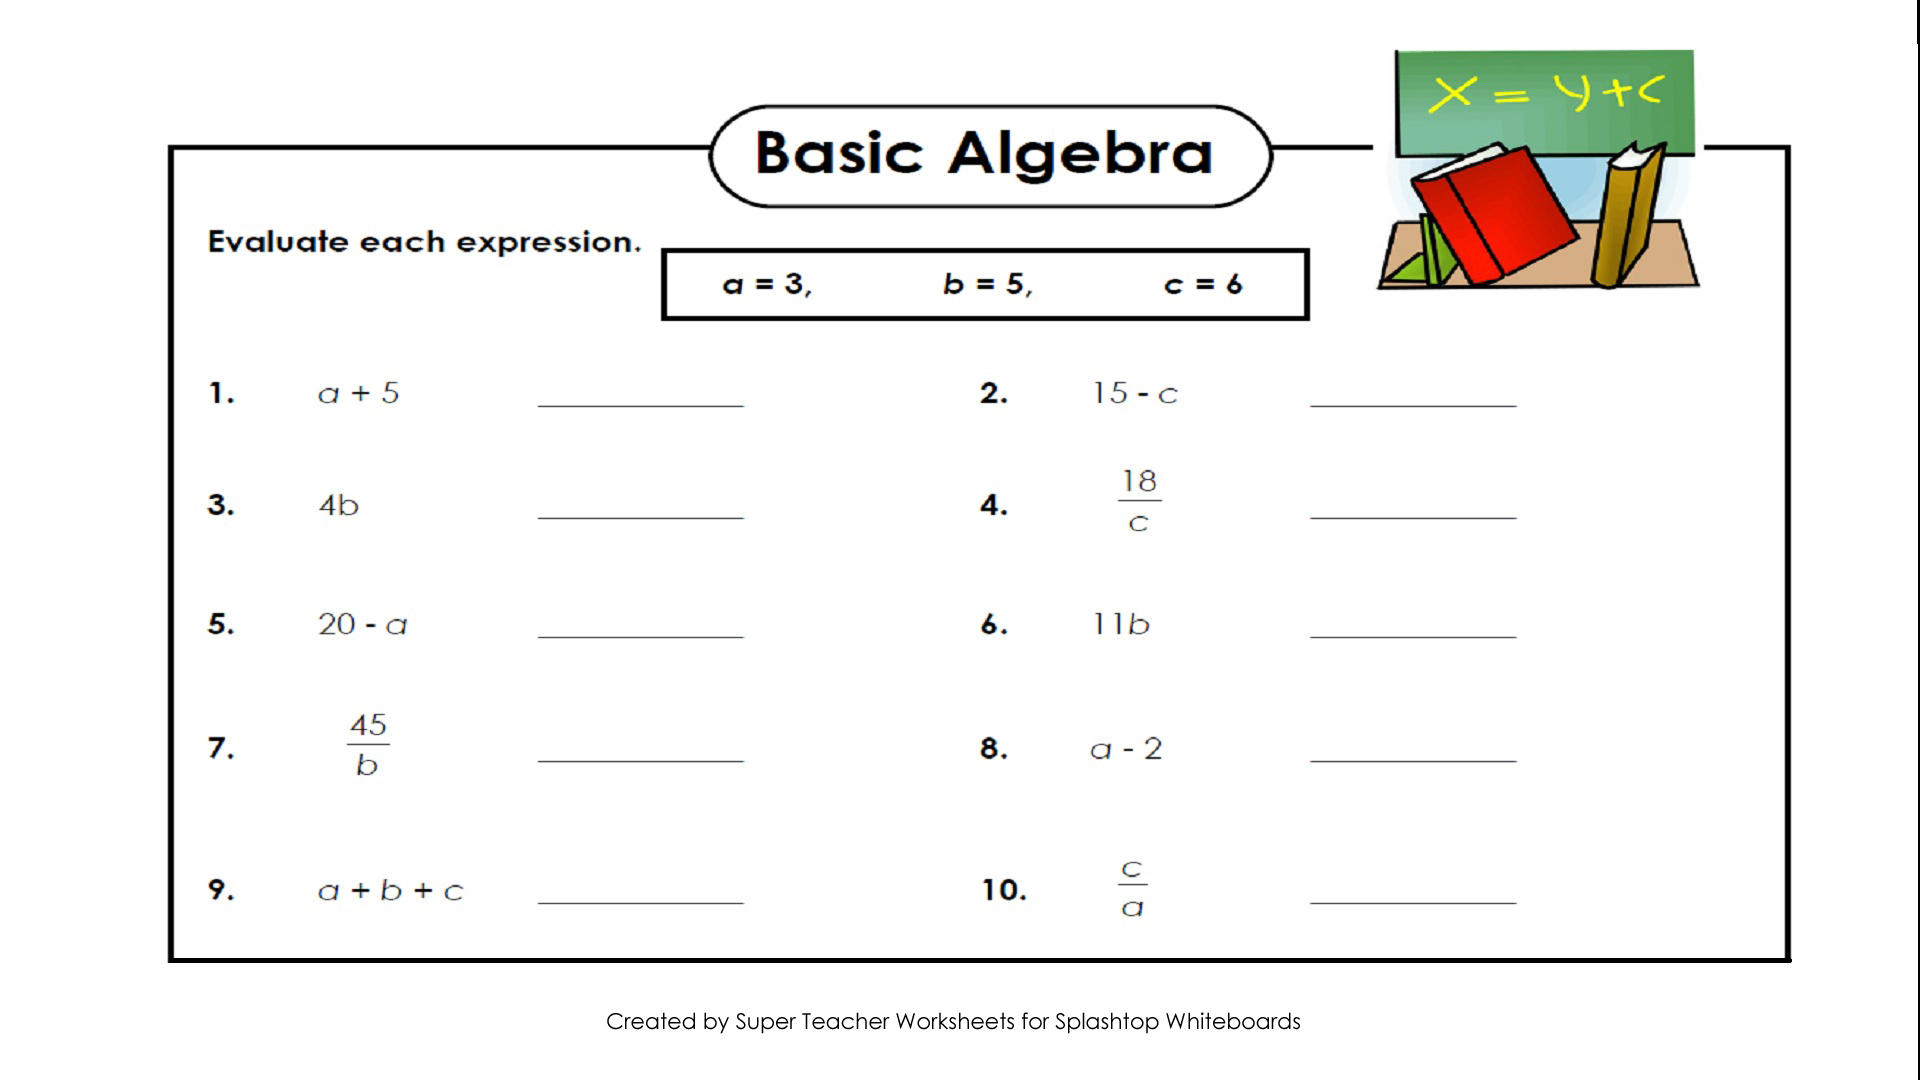 Uncategorized Superteacher Worksheet splashtop whiteboard background graphics algebra basic